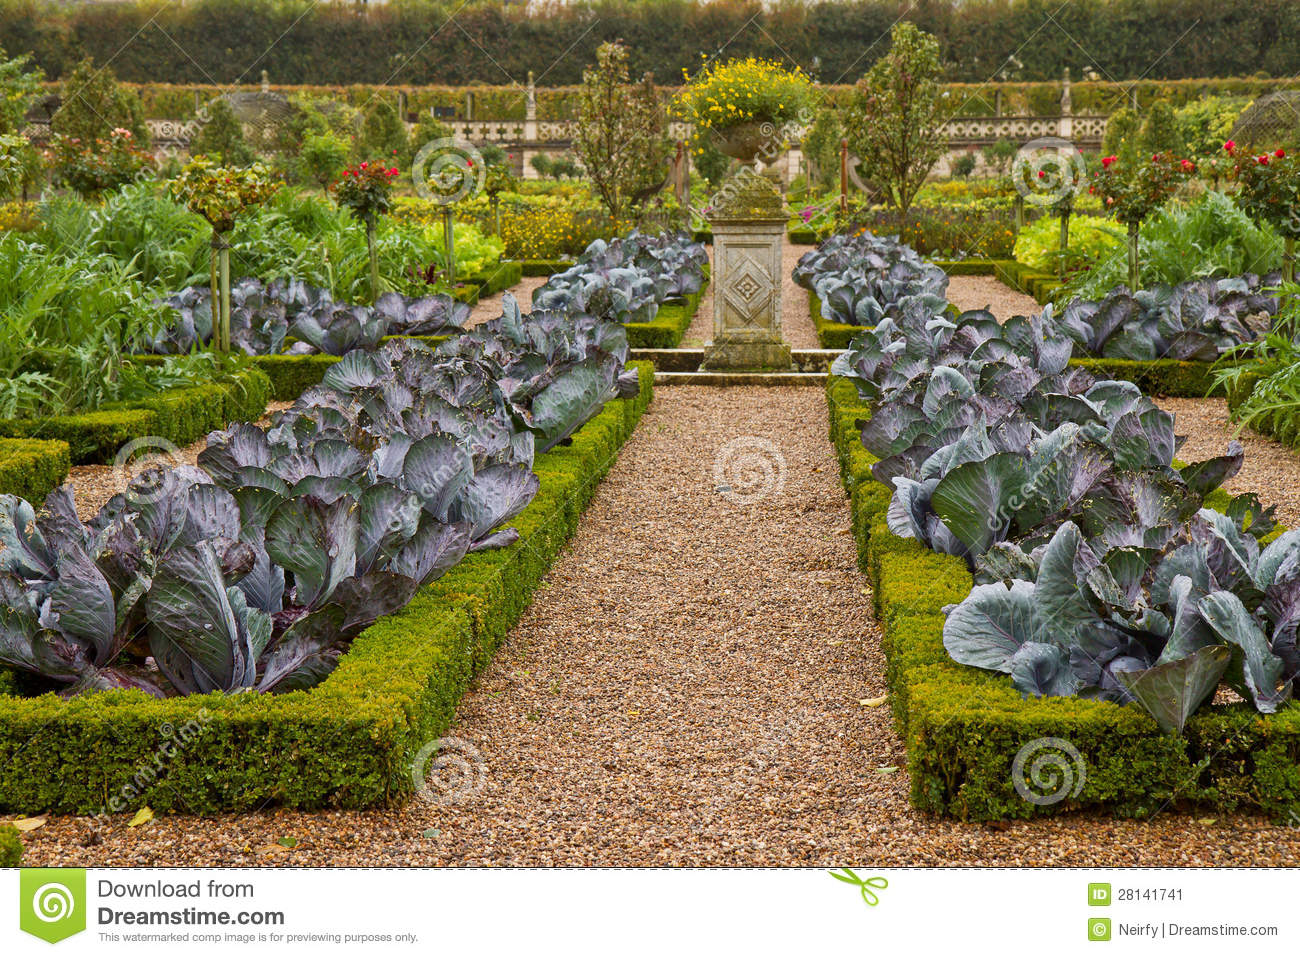 map of the loire valley with Stock Image French Vegetable Garden Image28141741 on Ferienwohnung Unterkunft Cluny 118113 also 8664047382 likewise Ch s Elysees besides Chenonghost moreover Annecy.